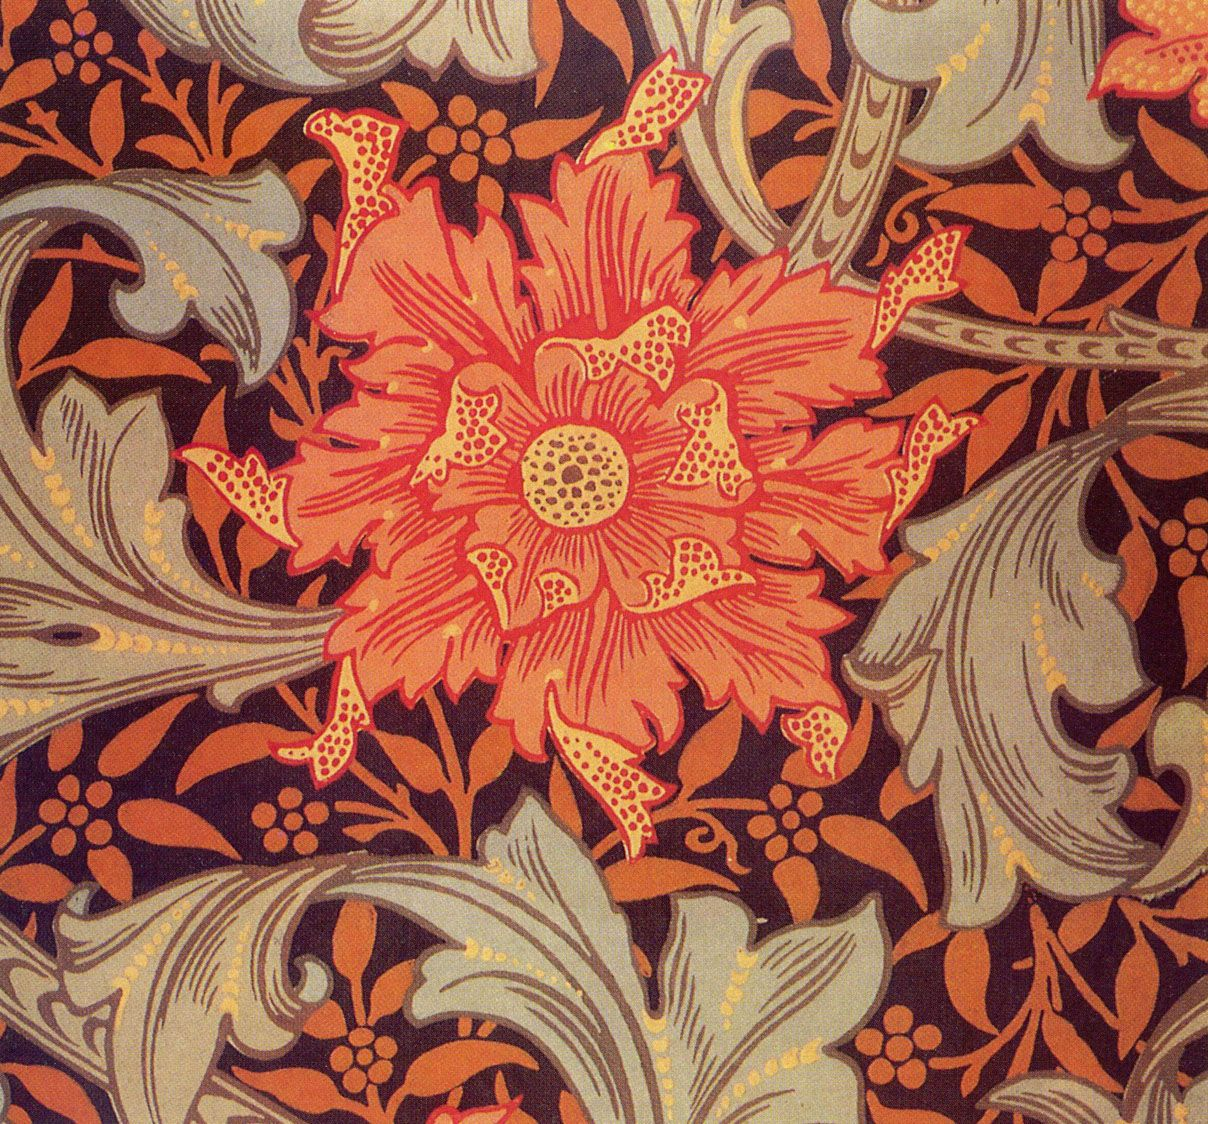 48+ Arts and crafts movement examples information